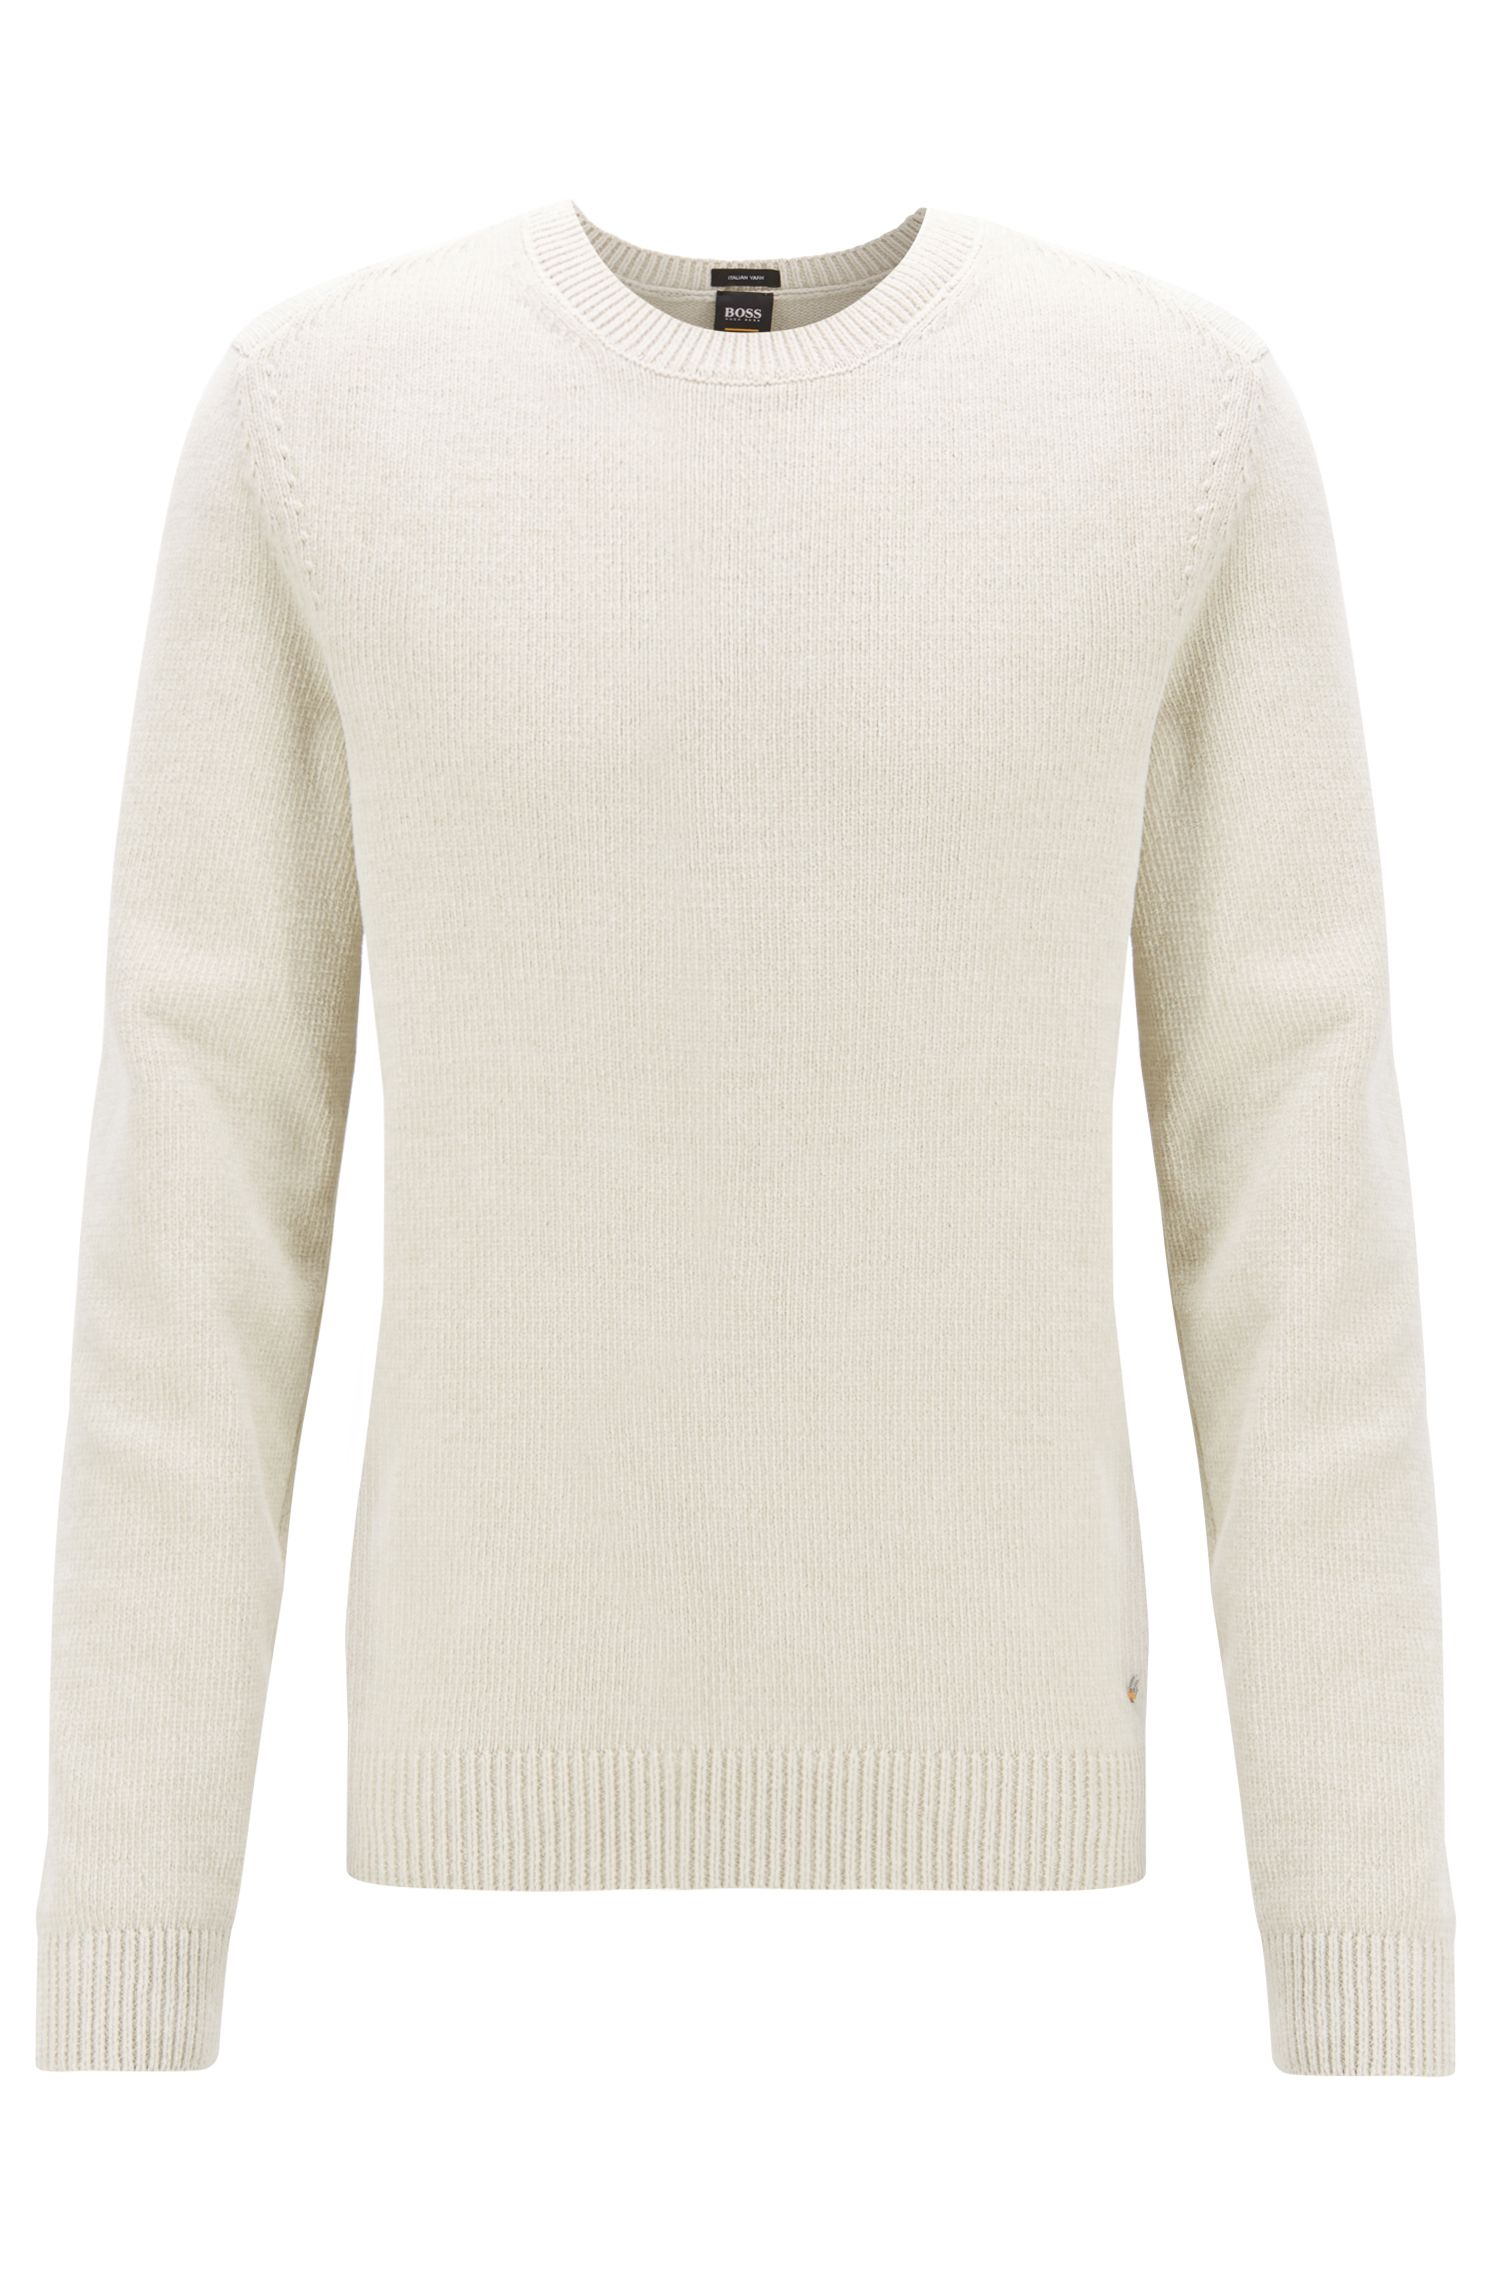 Plain-knit sweater in Italian cotton chenille, White